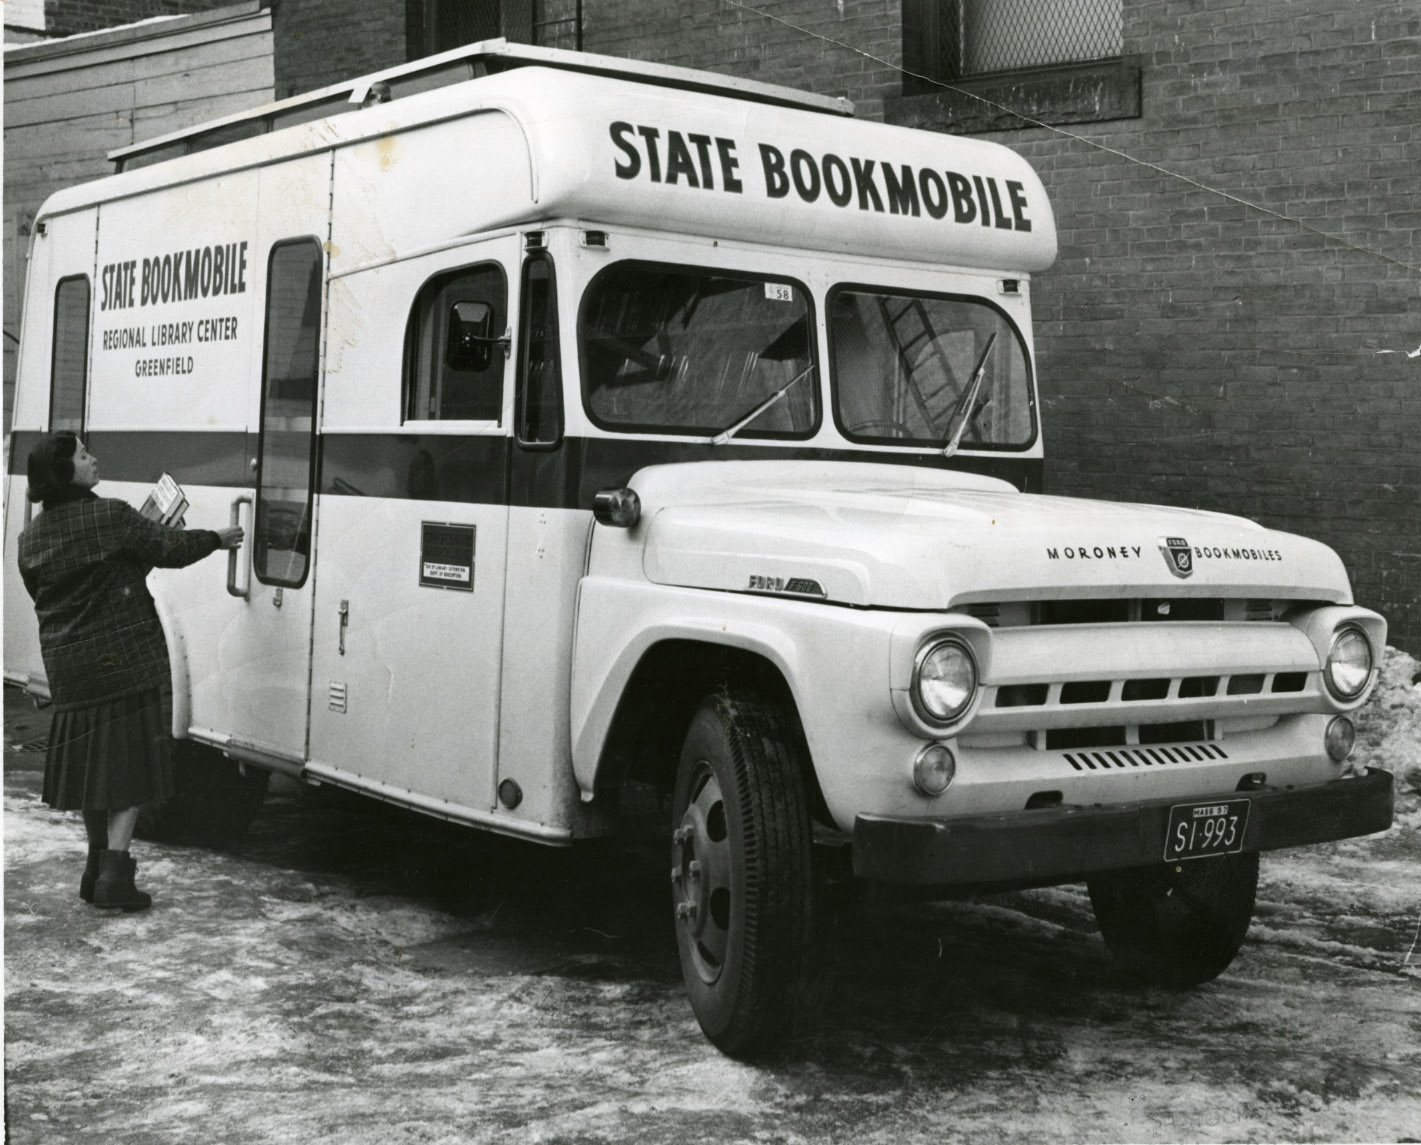 Depiction of Bookmobile, 1957